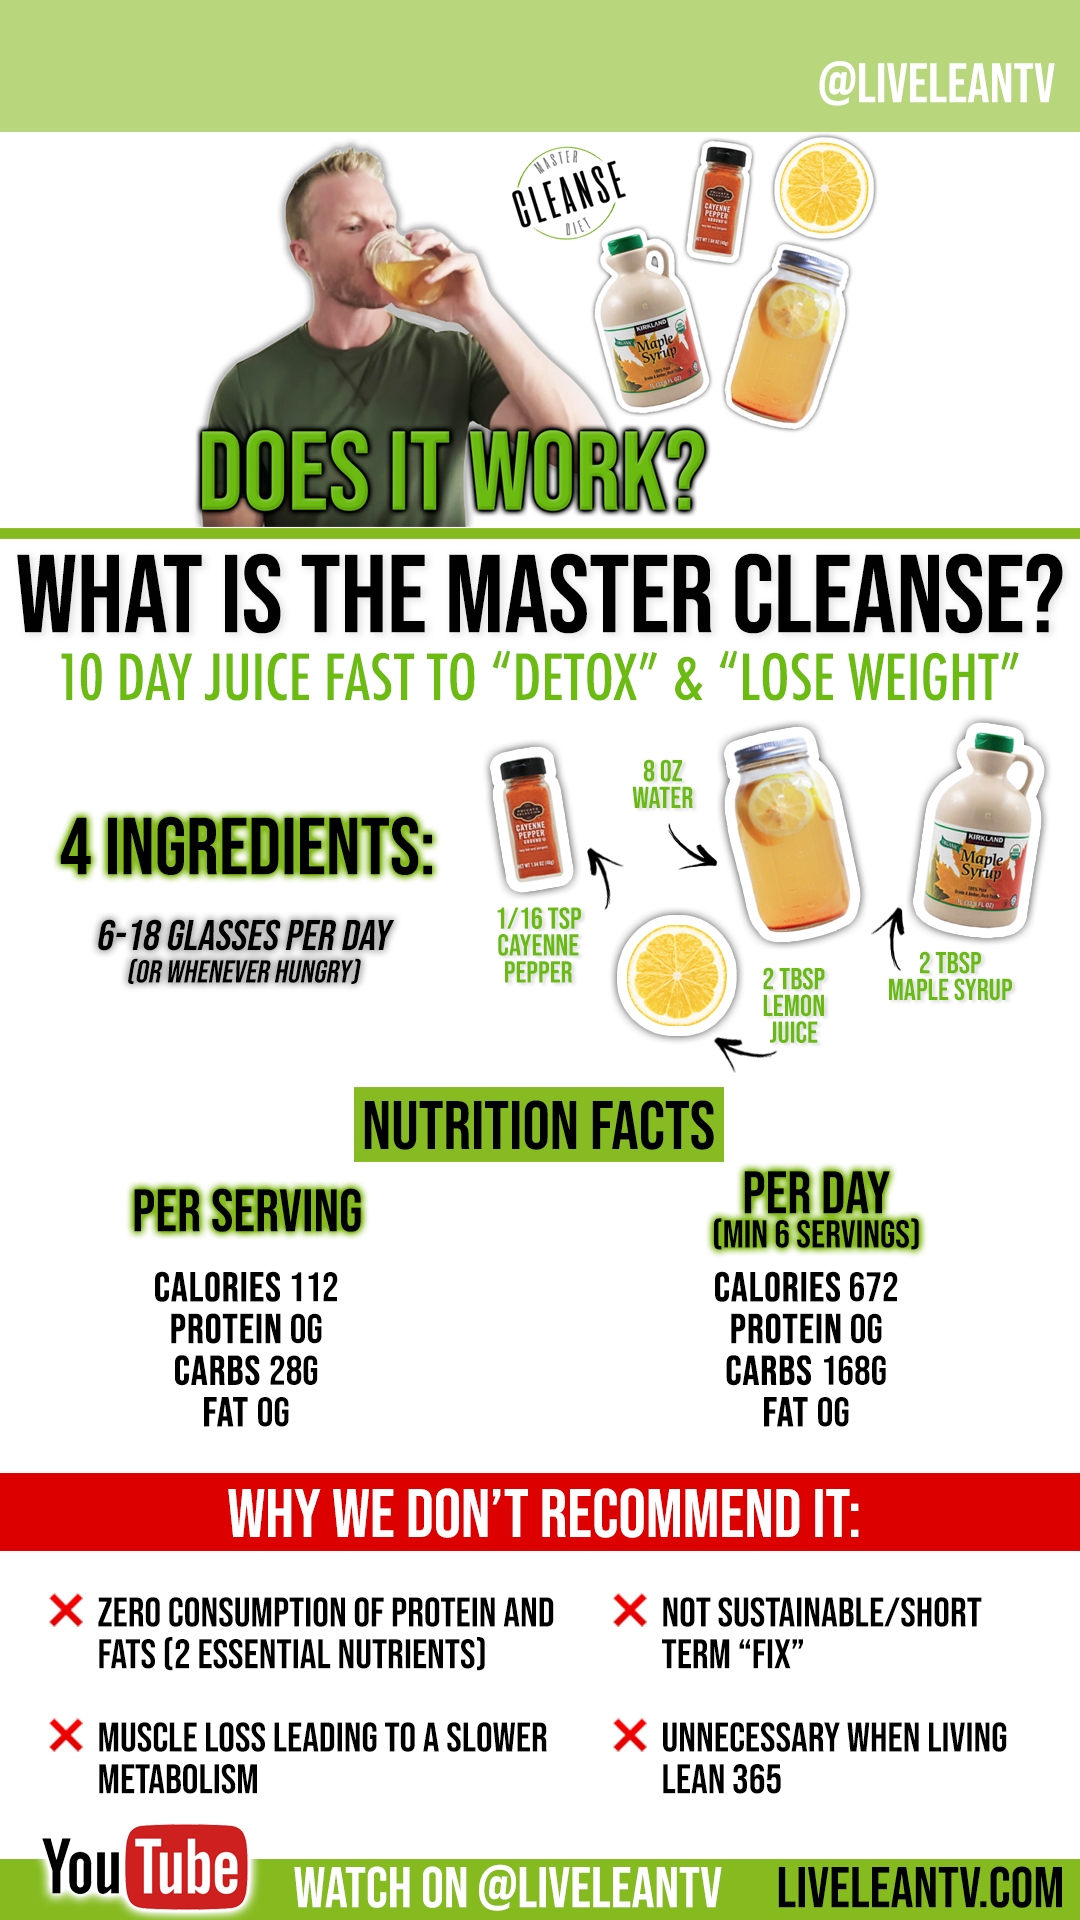 What Is The Master Cleanse Diet I Tried It And Was Shocked Master Cleanse Diet Lemonade Diet Juice Fast